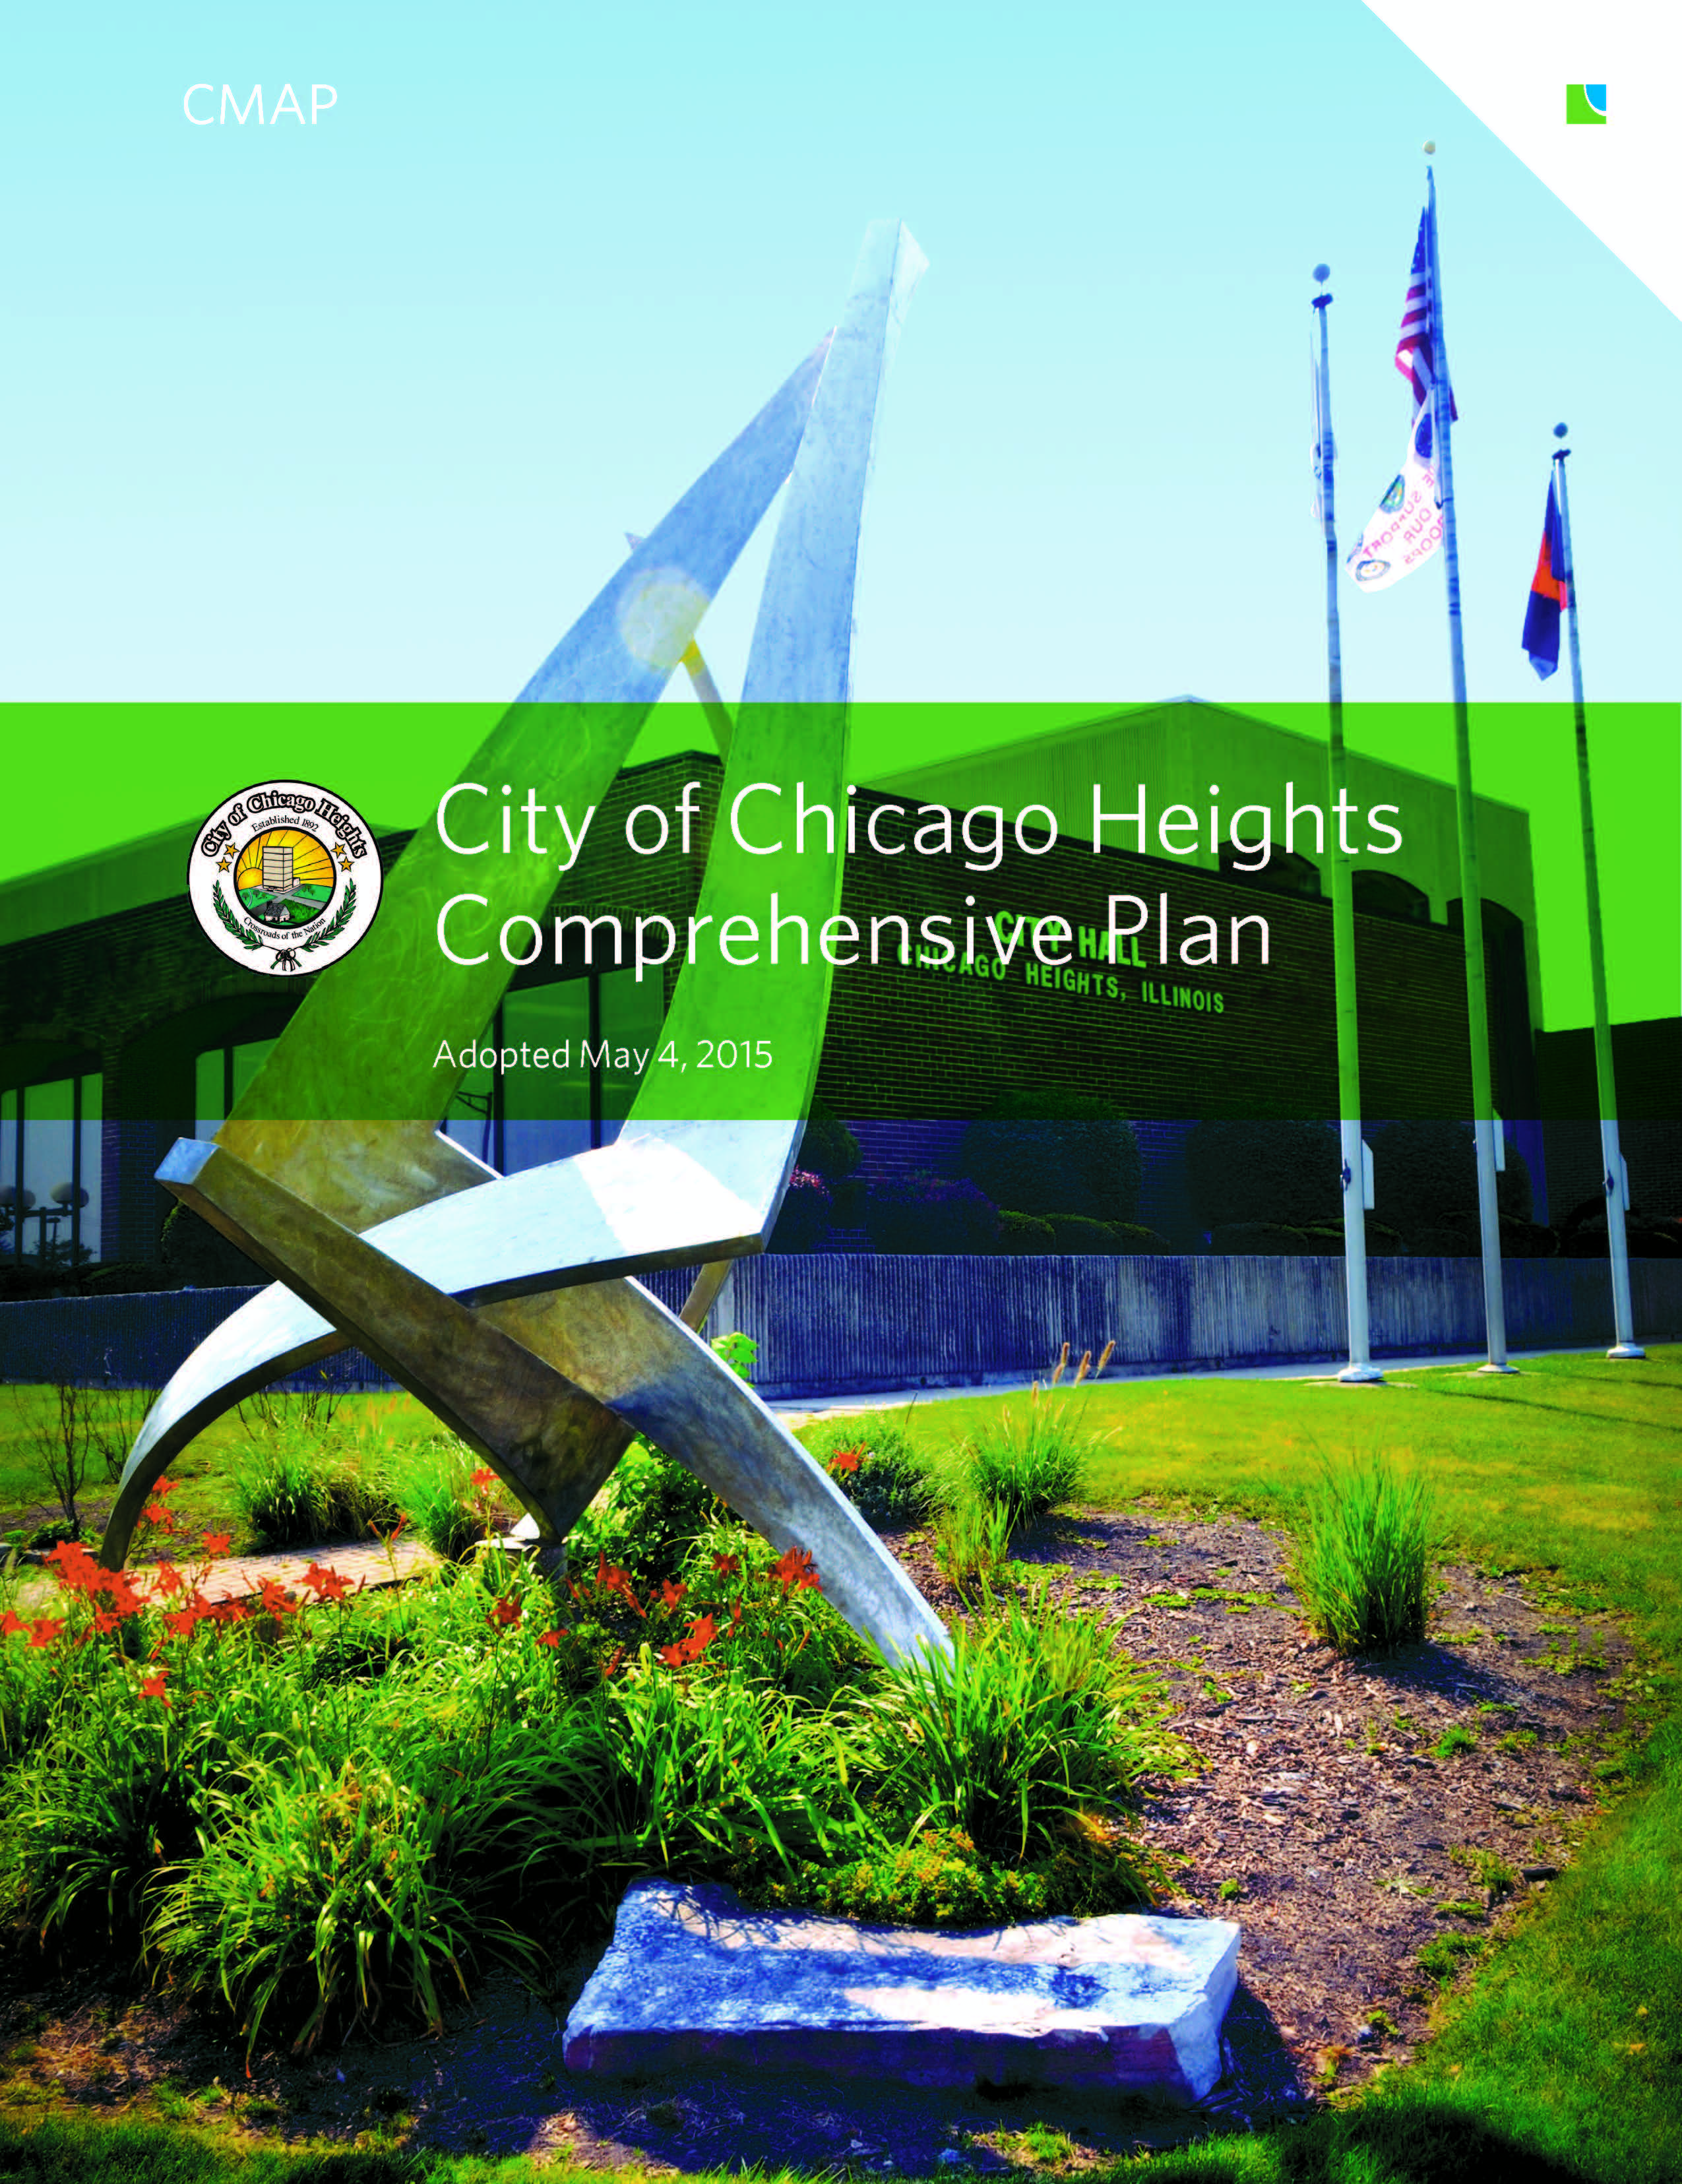 CHICAGO HEIGHTS COMPREHENSIVE PLAN CMAP.jpg